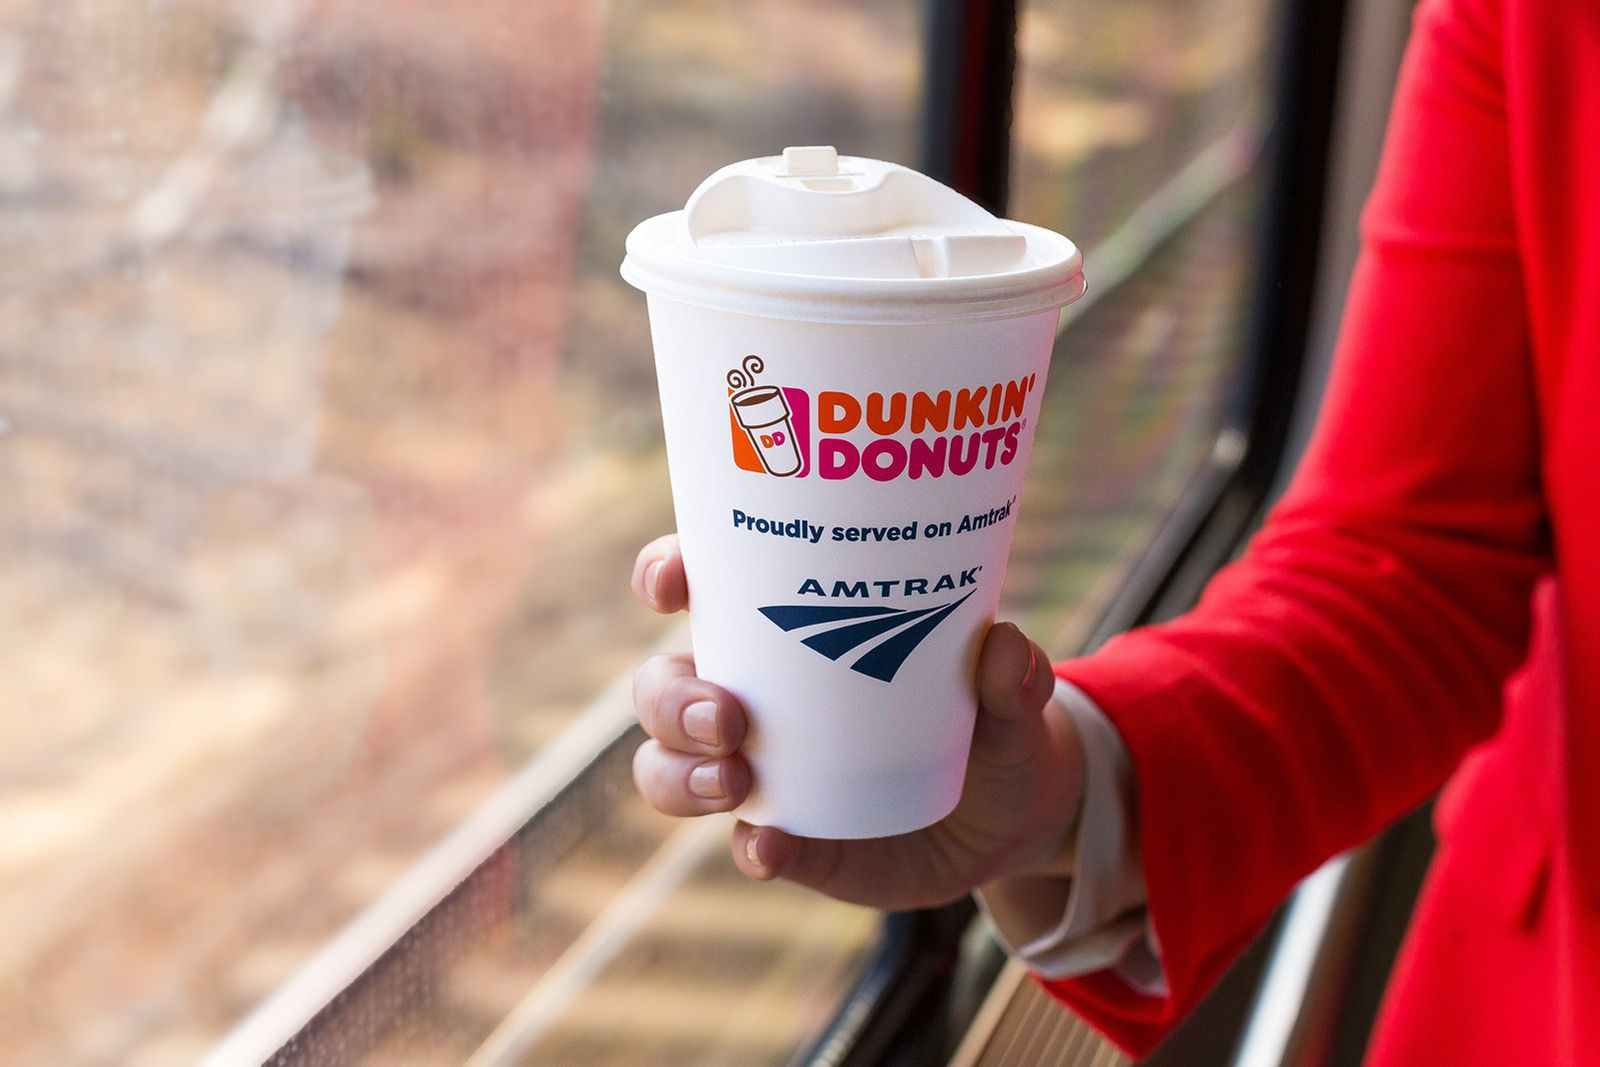 Dunkin' Donuts and Amtrak Expand Partnership with Hot Coffee Service On Board Amtrak Northeast Regional Trains